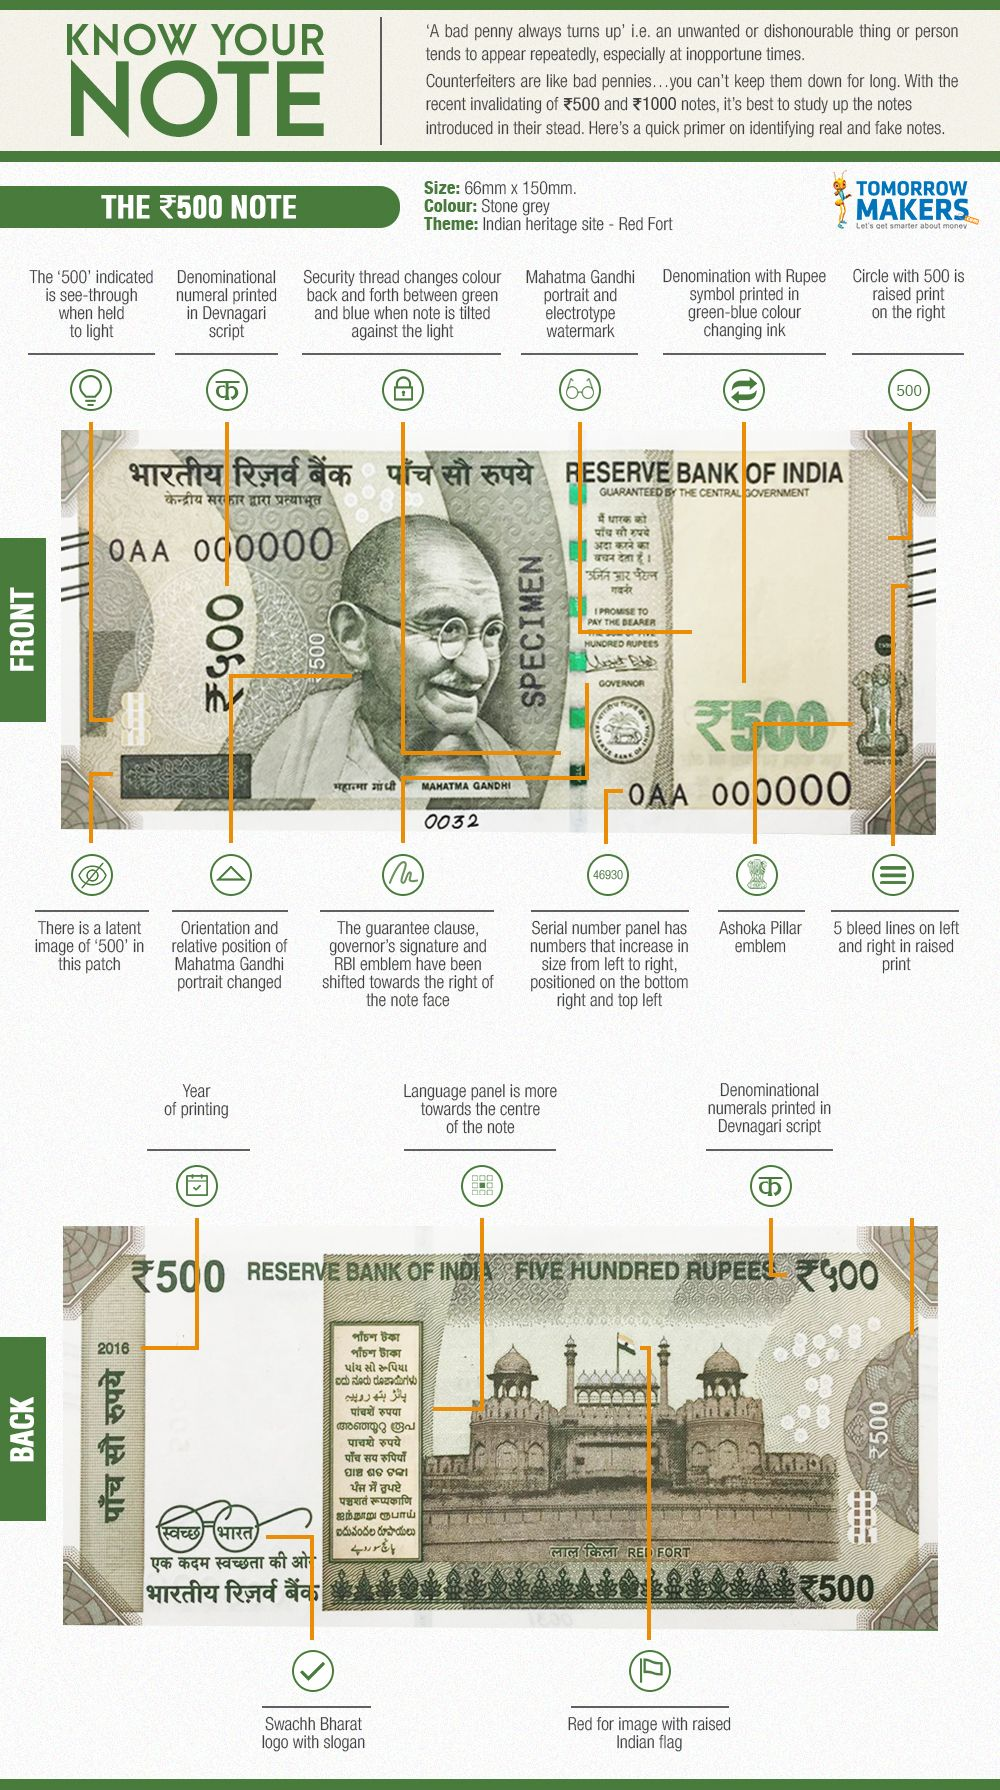 Know your note: Rs.500